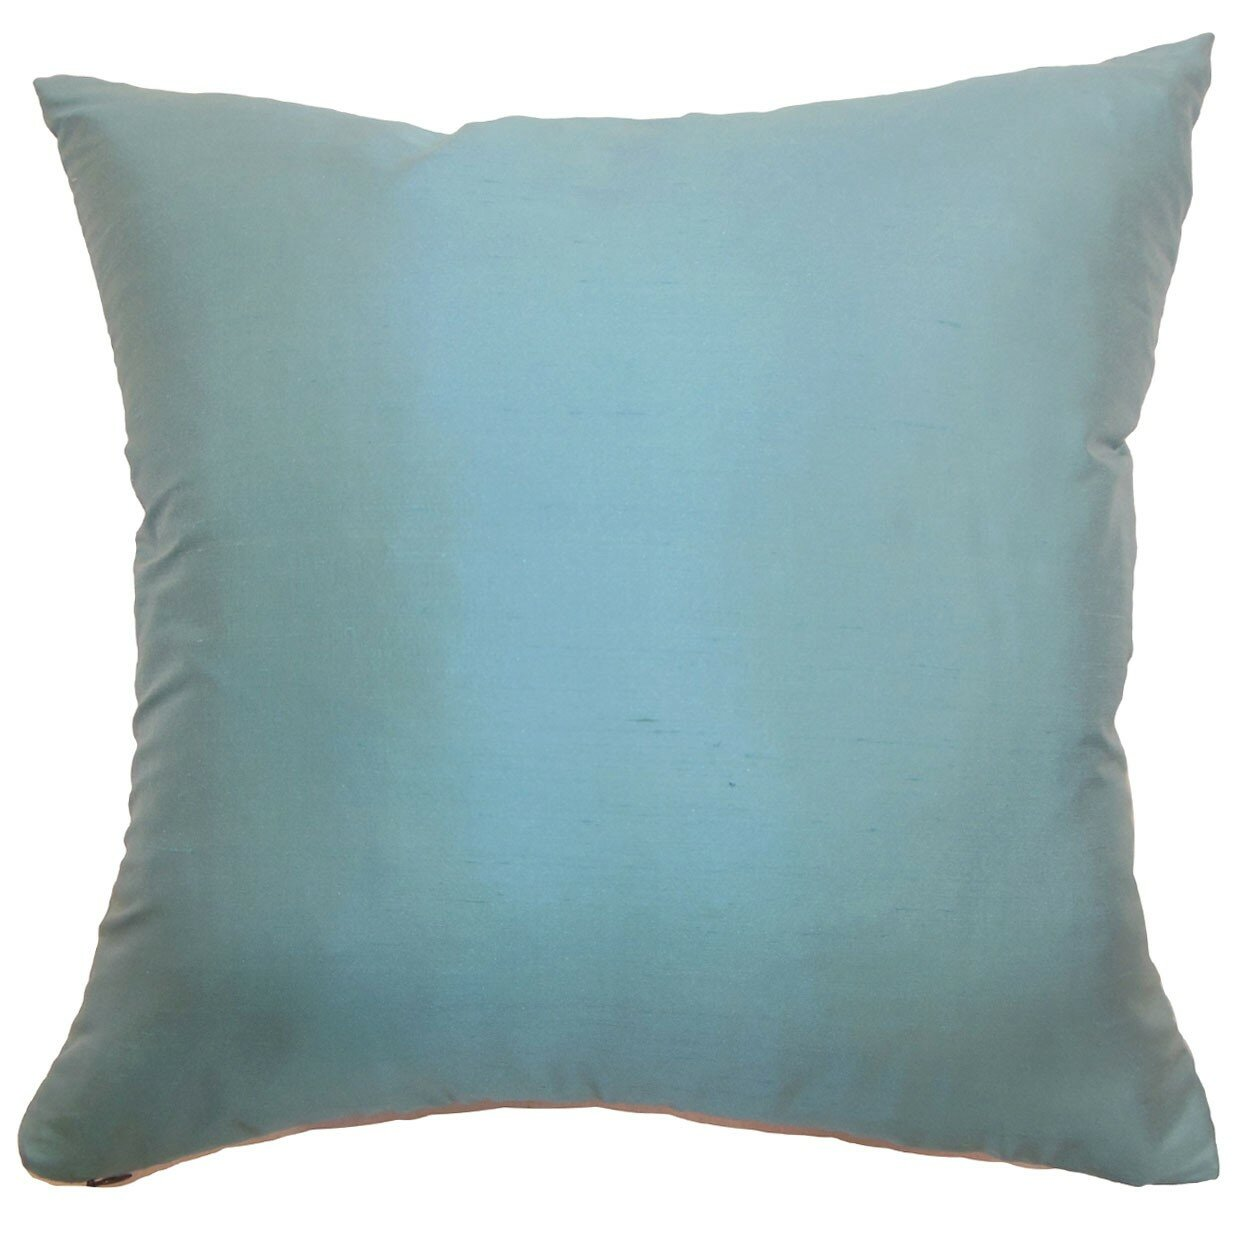 Throw Pillows Pictures : The Pillow Collection Agnieska Plain Silk Throw Pillow & Reviews Wayfair